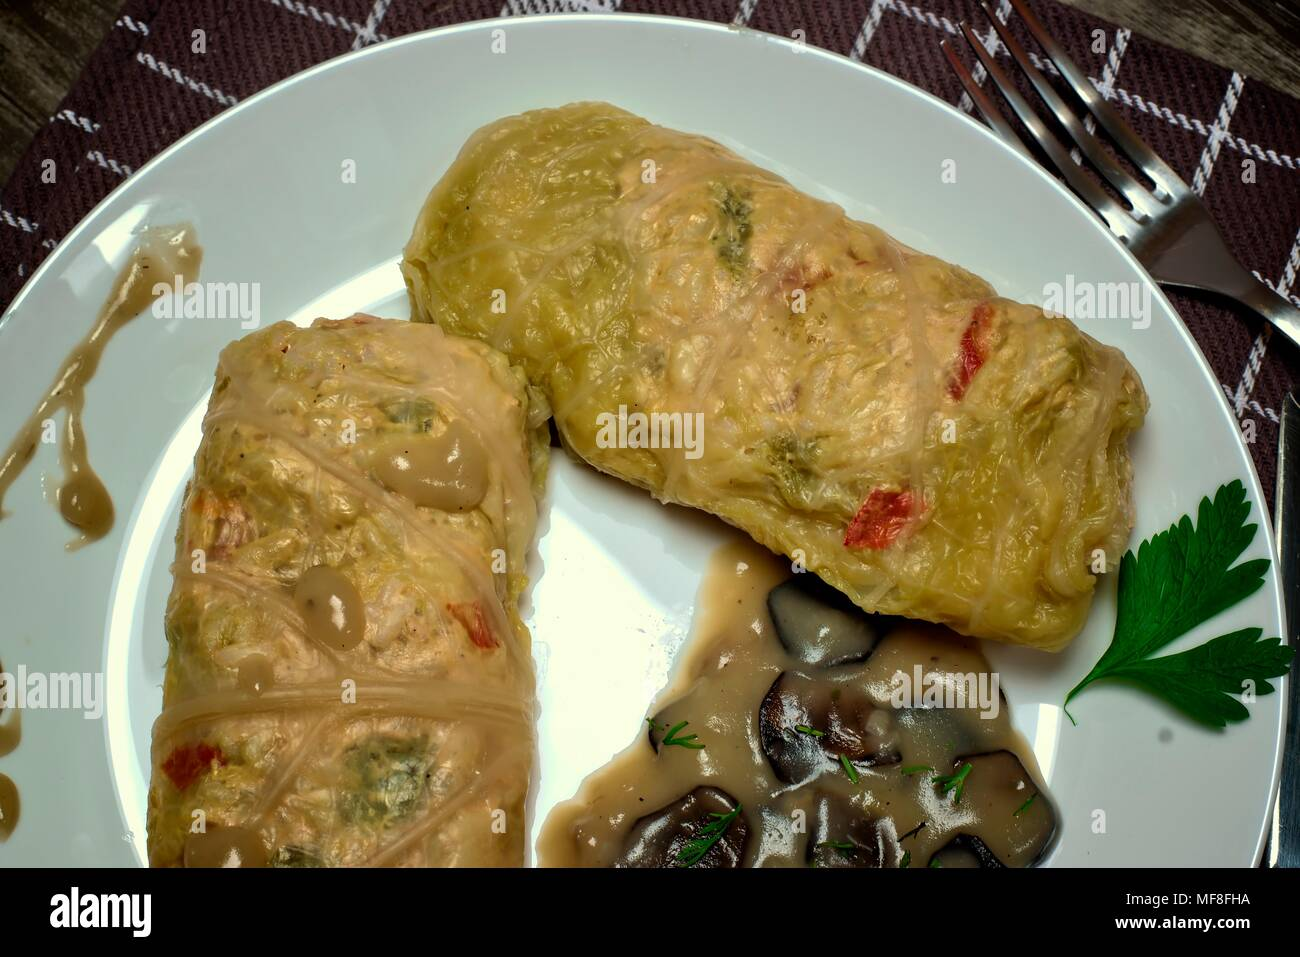 Appetizing chicken rolls with stuffing